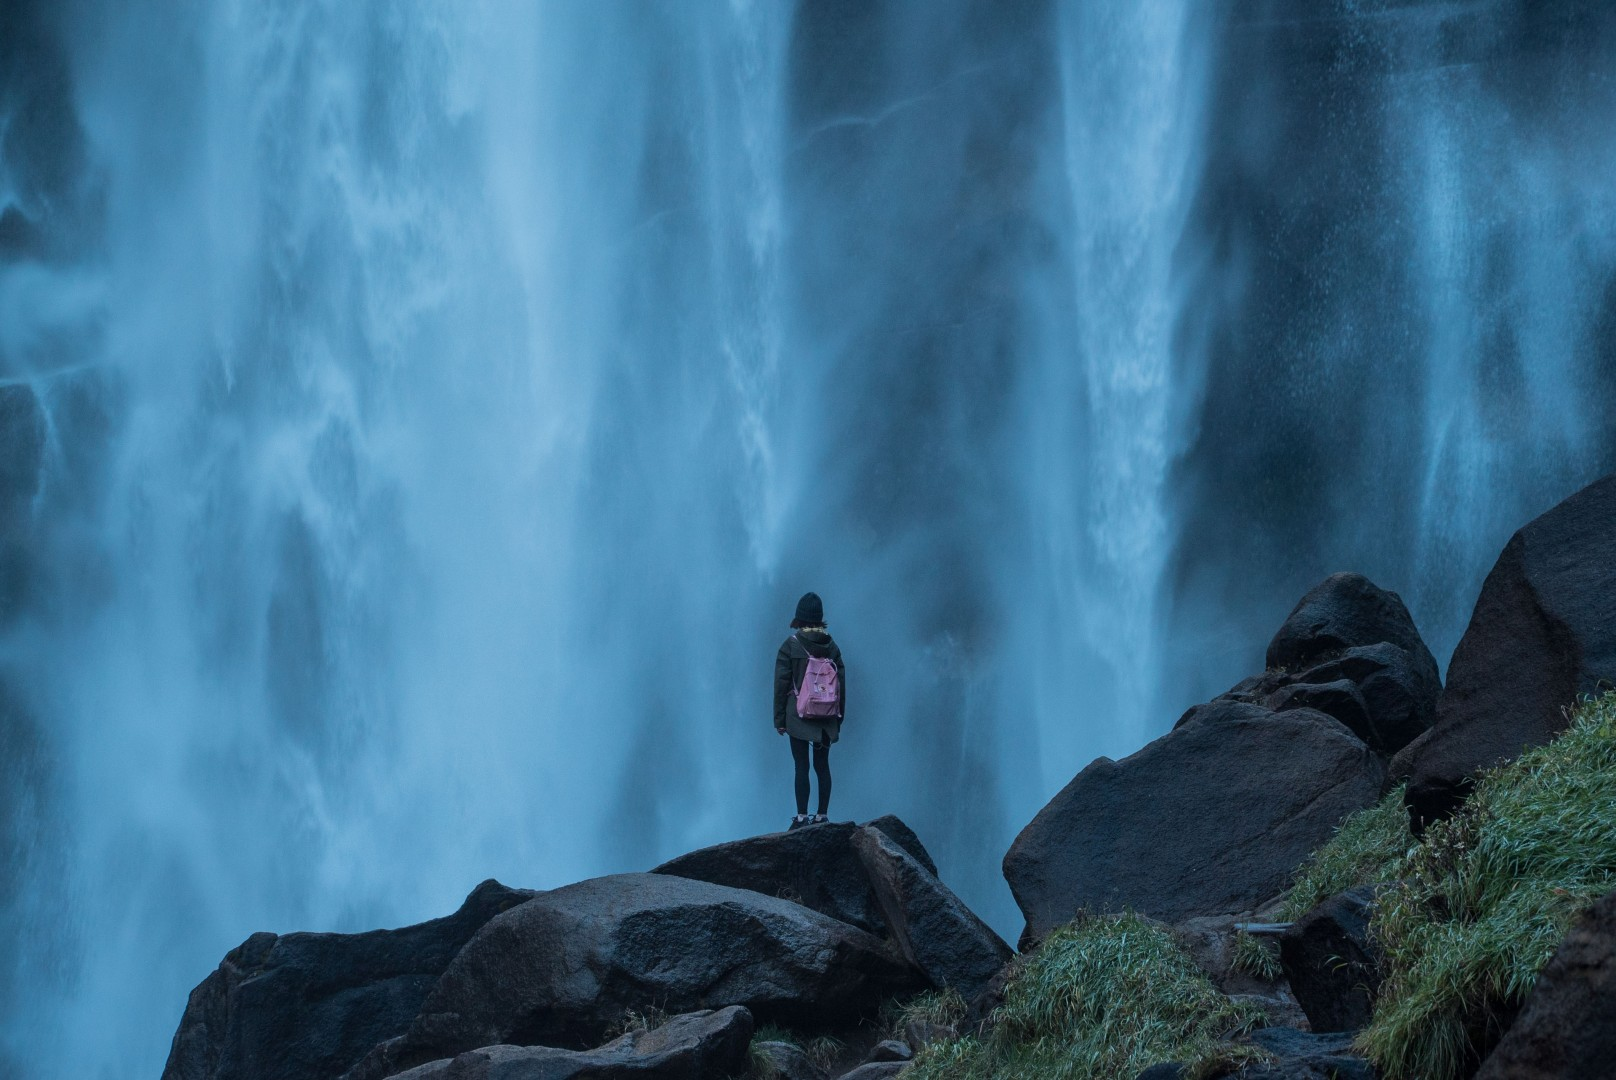 Woman Alone Stood on Rocks Looking At Waterfall